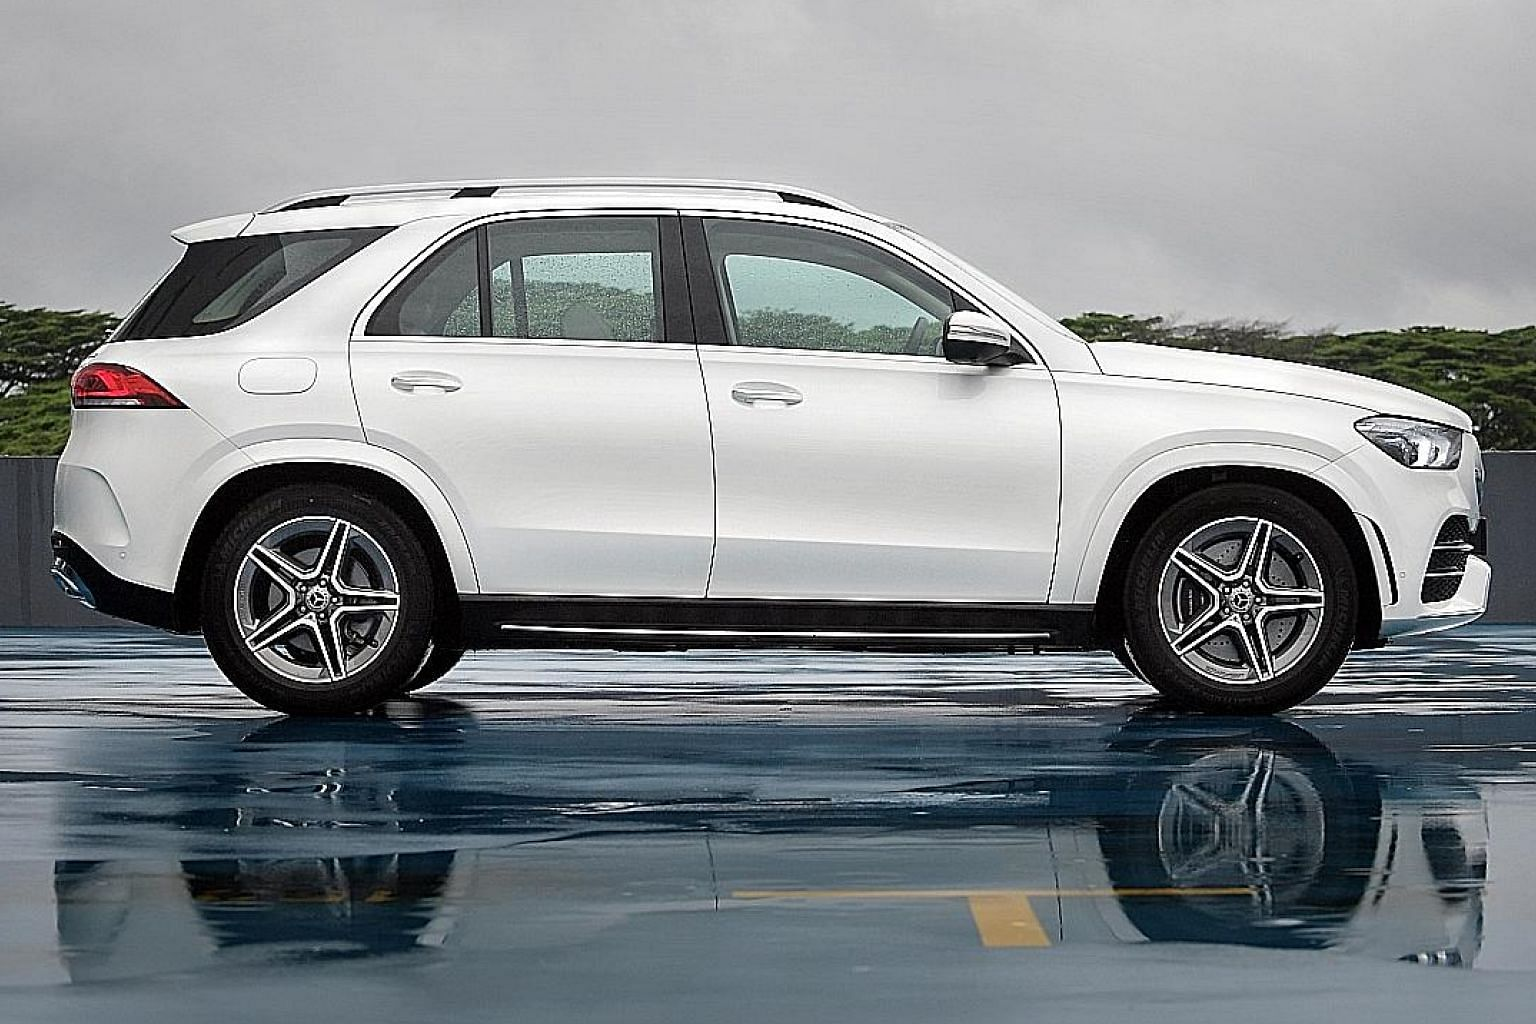 With a 2,995mm wheelbase, the Mercedes-Benz GLE450 has adequate interior space. The boot is sizeable when the last row is not in use.